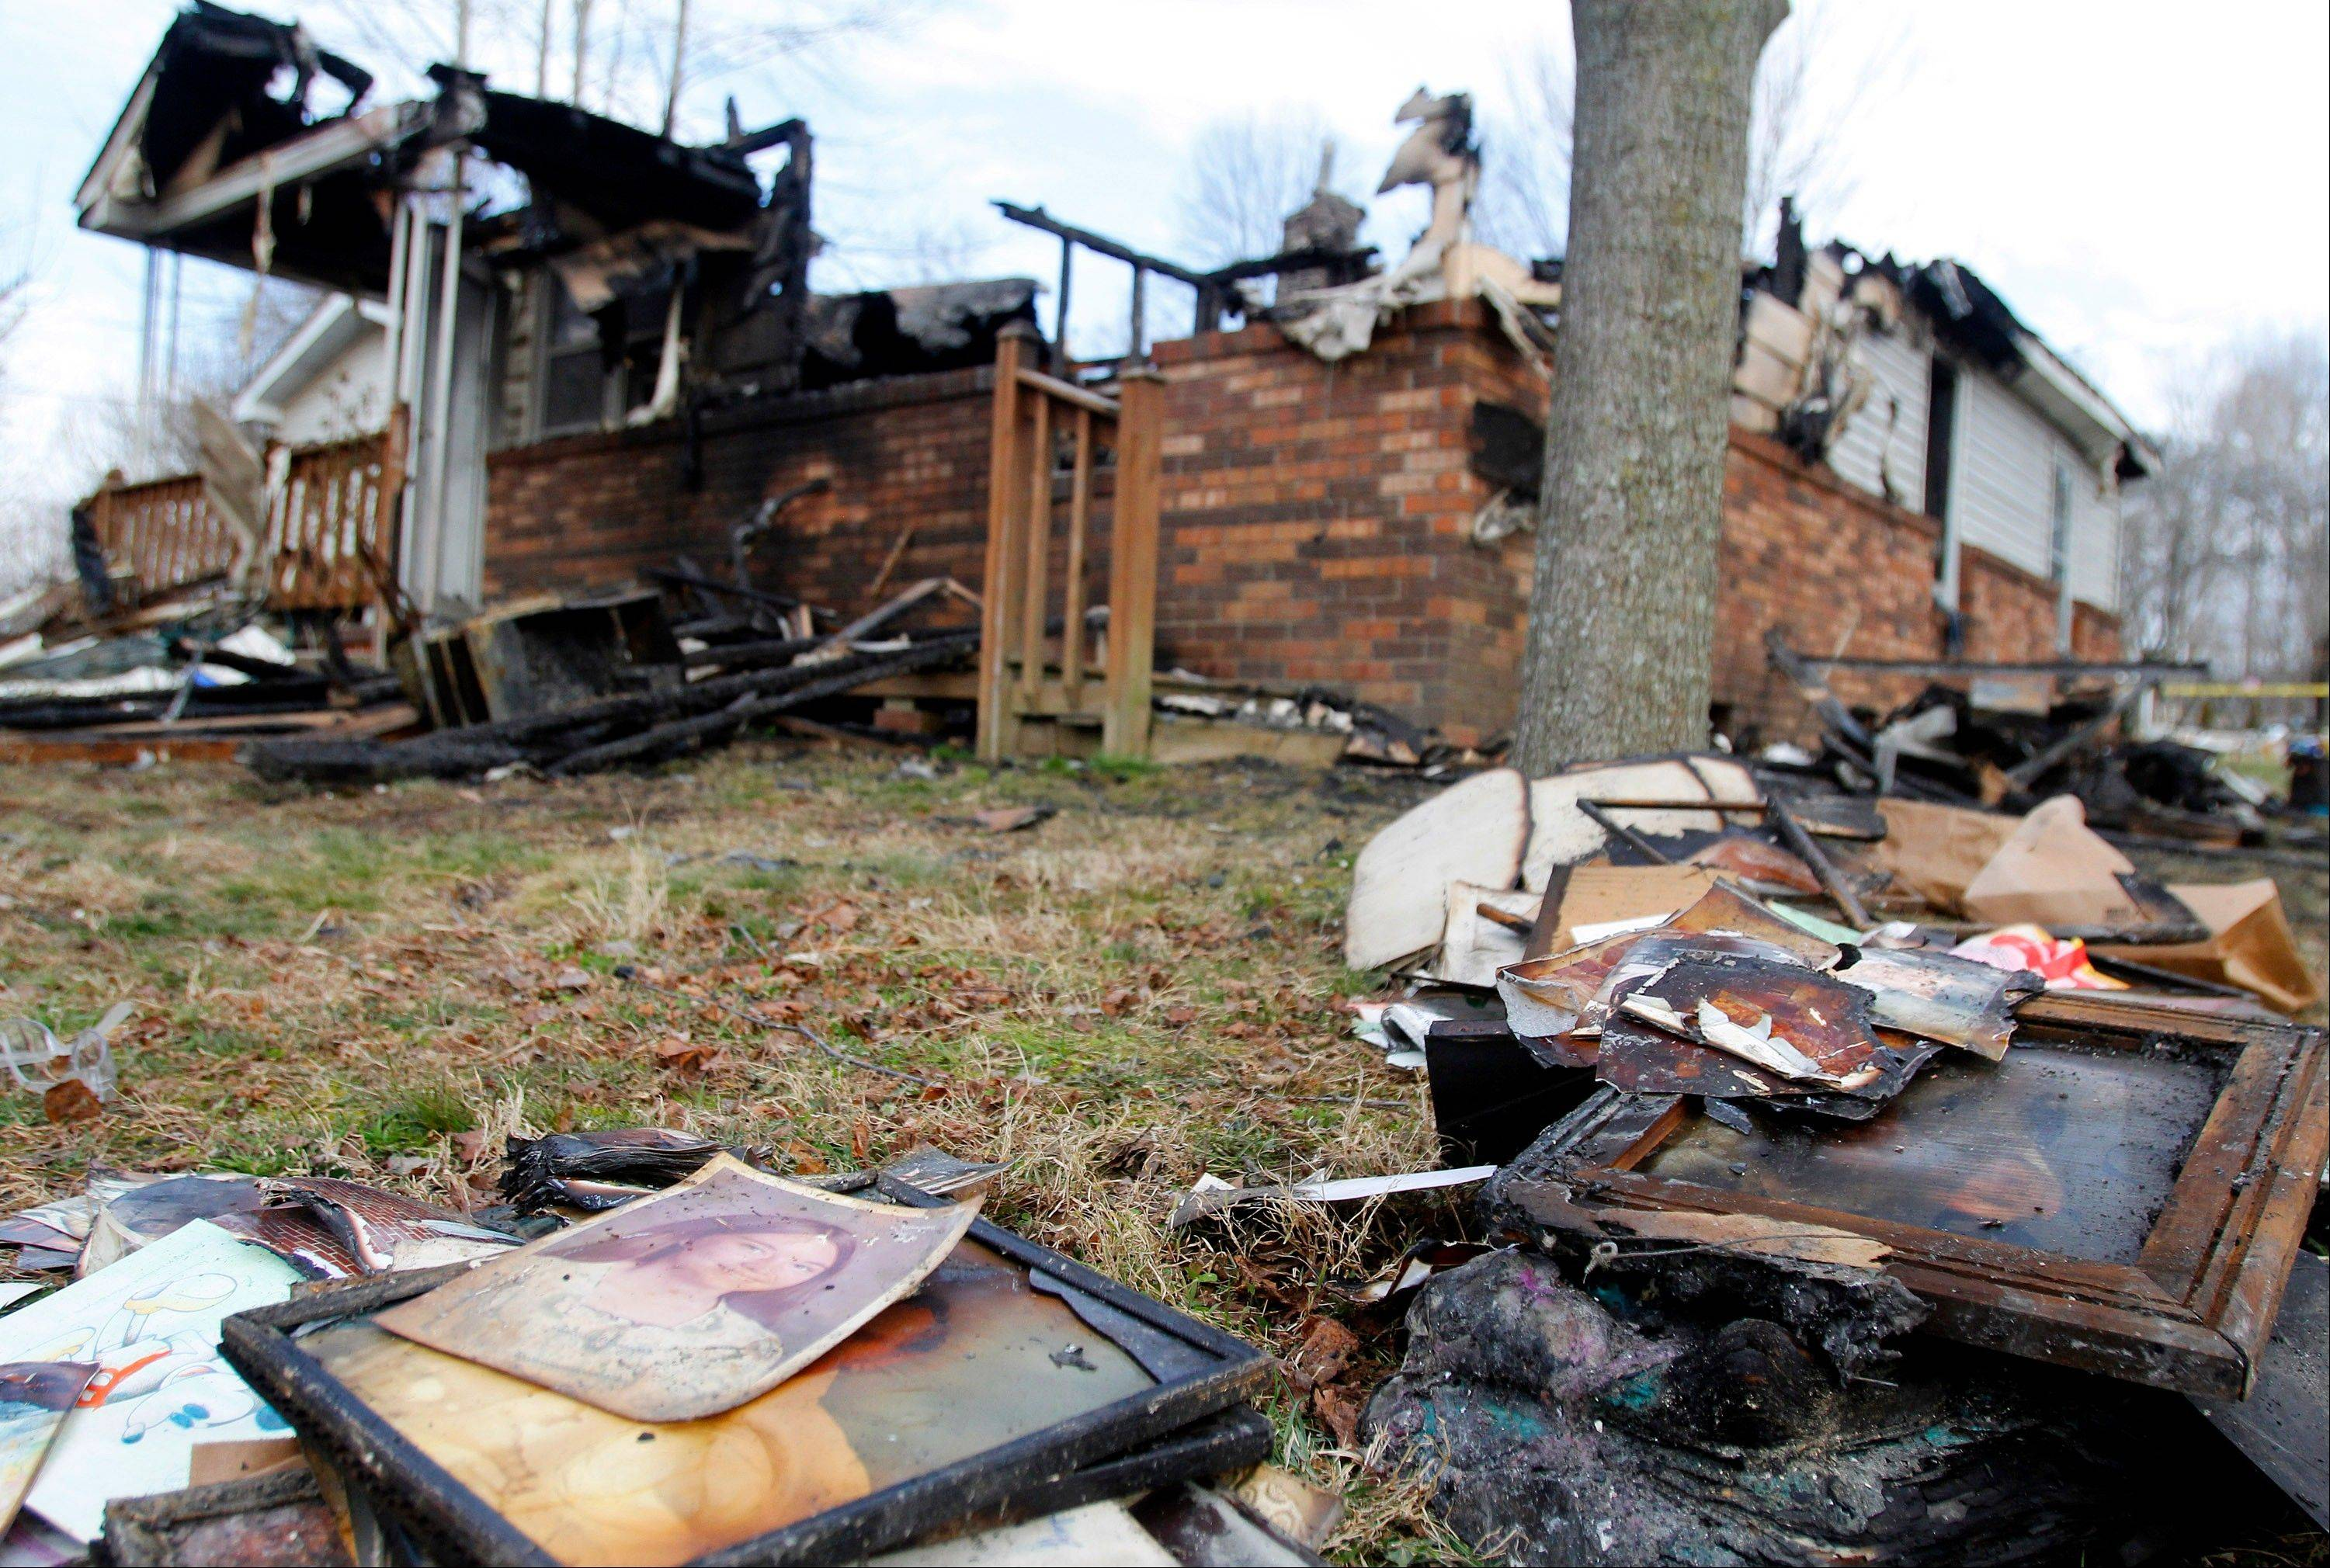 An engaged couple and five children killed in a weekend house fire in southern Kentucky died from smoke inhalation, investigators said Tuesday as they worked to determine the cause of the blaze.